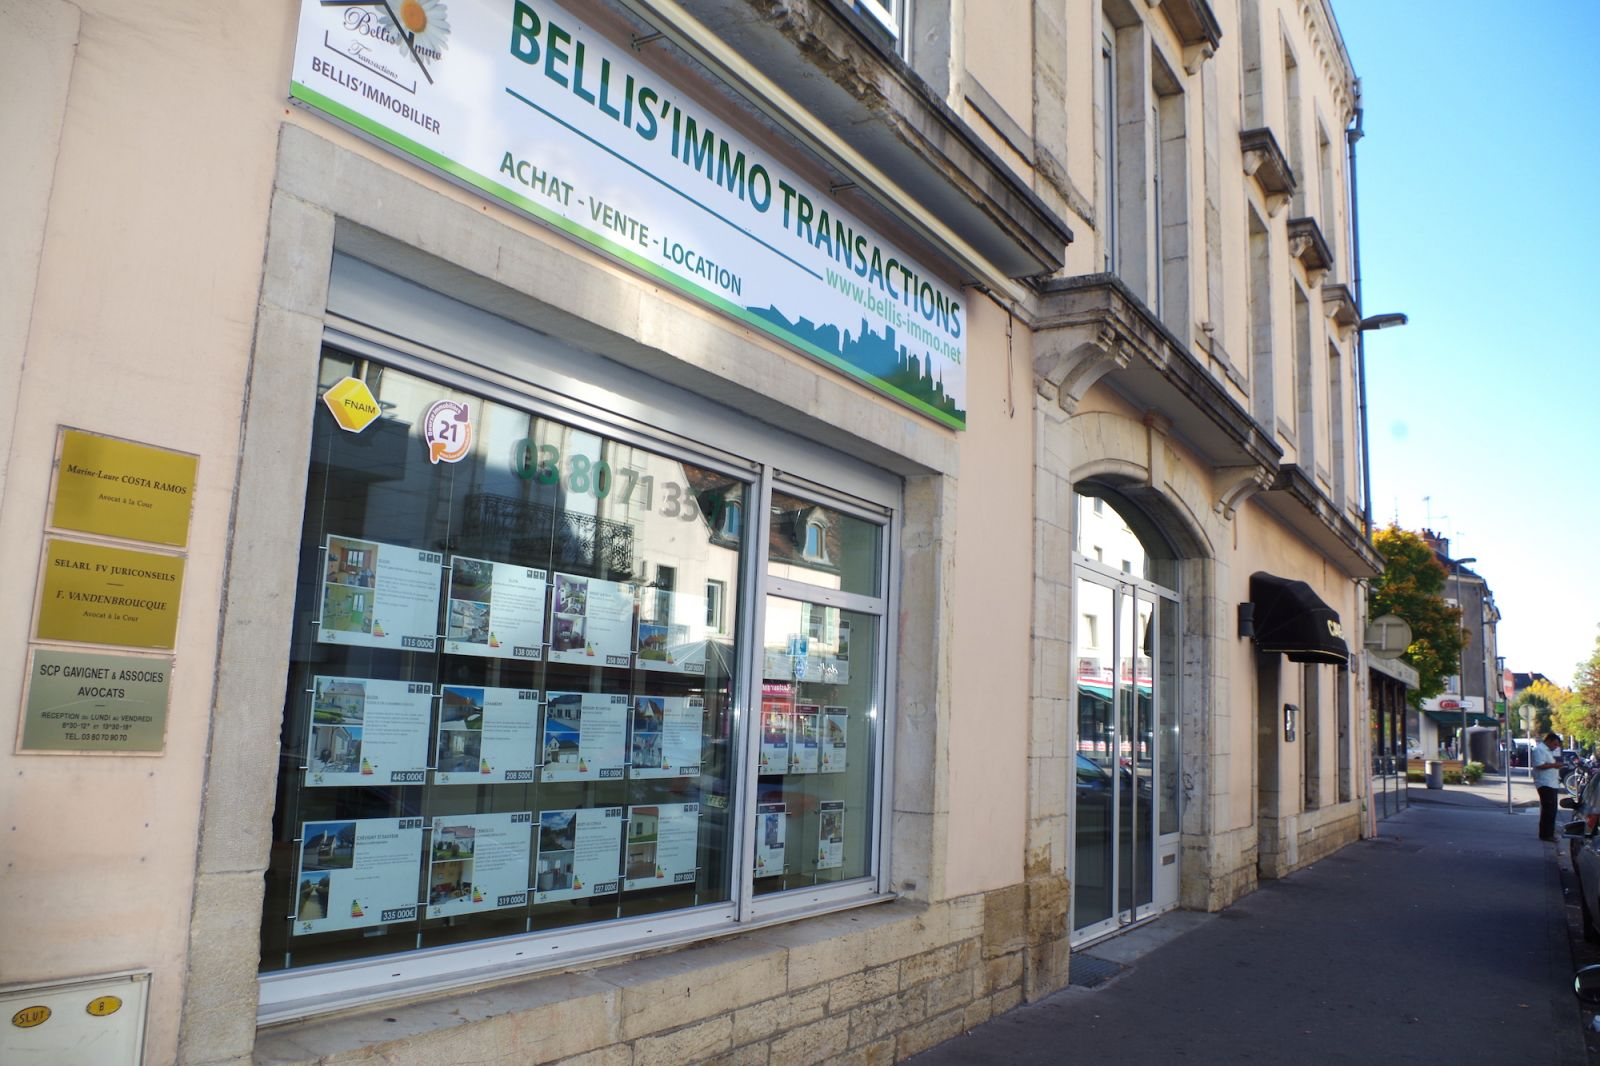 Cabinet Neyrat Dijon Agence Immobilière Bellis Immo Transactions